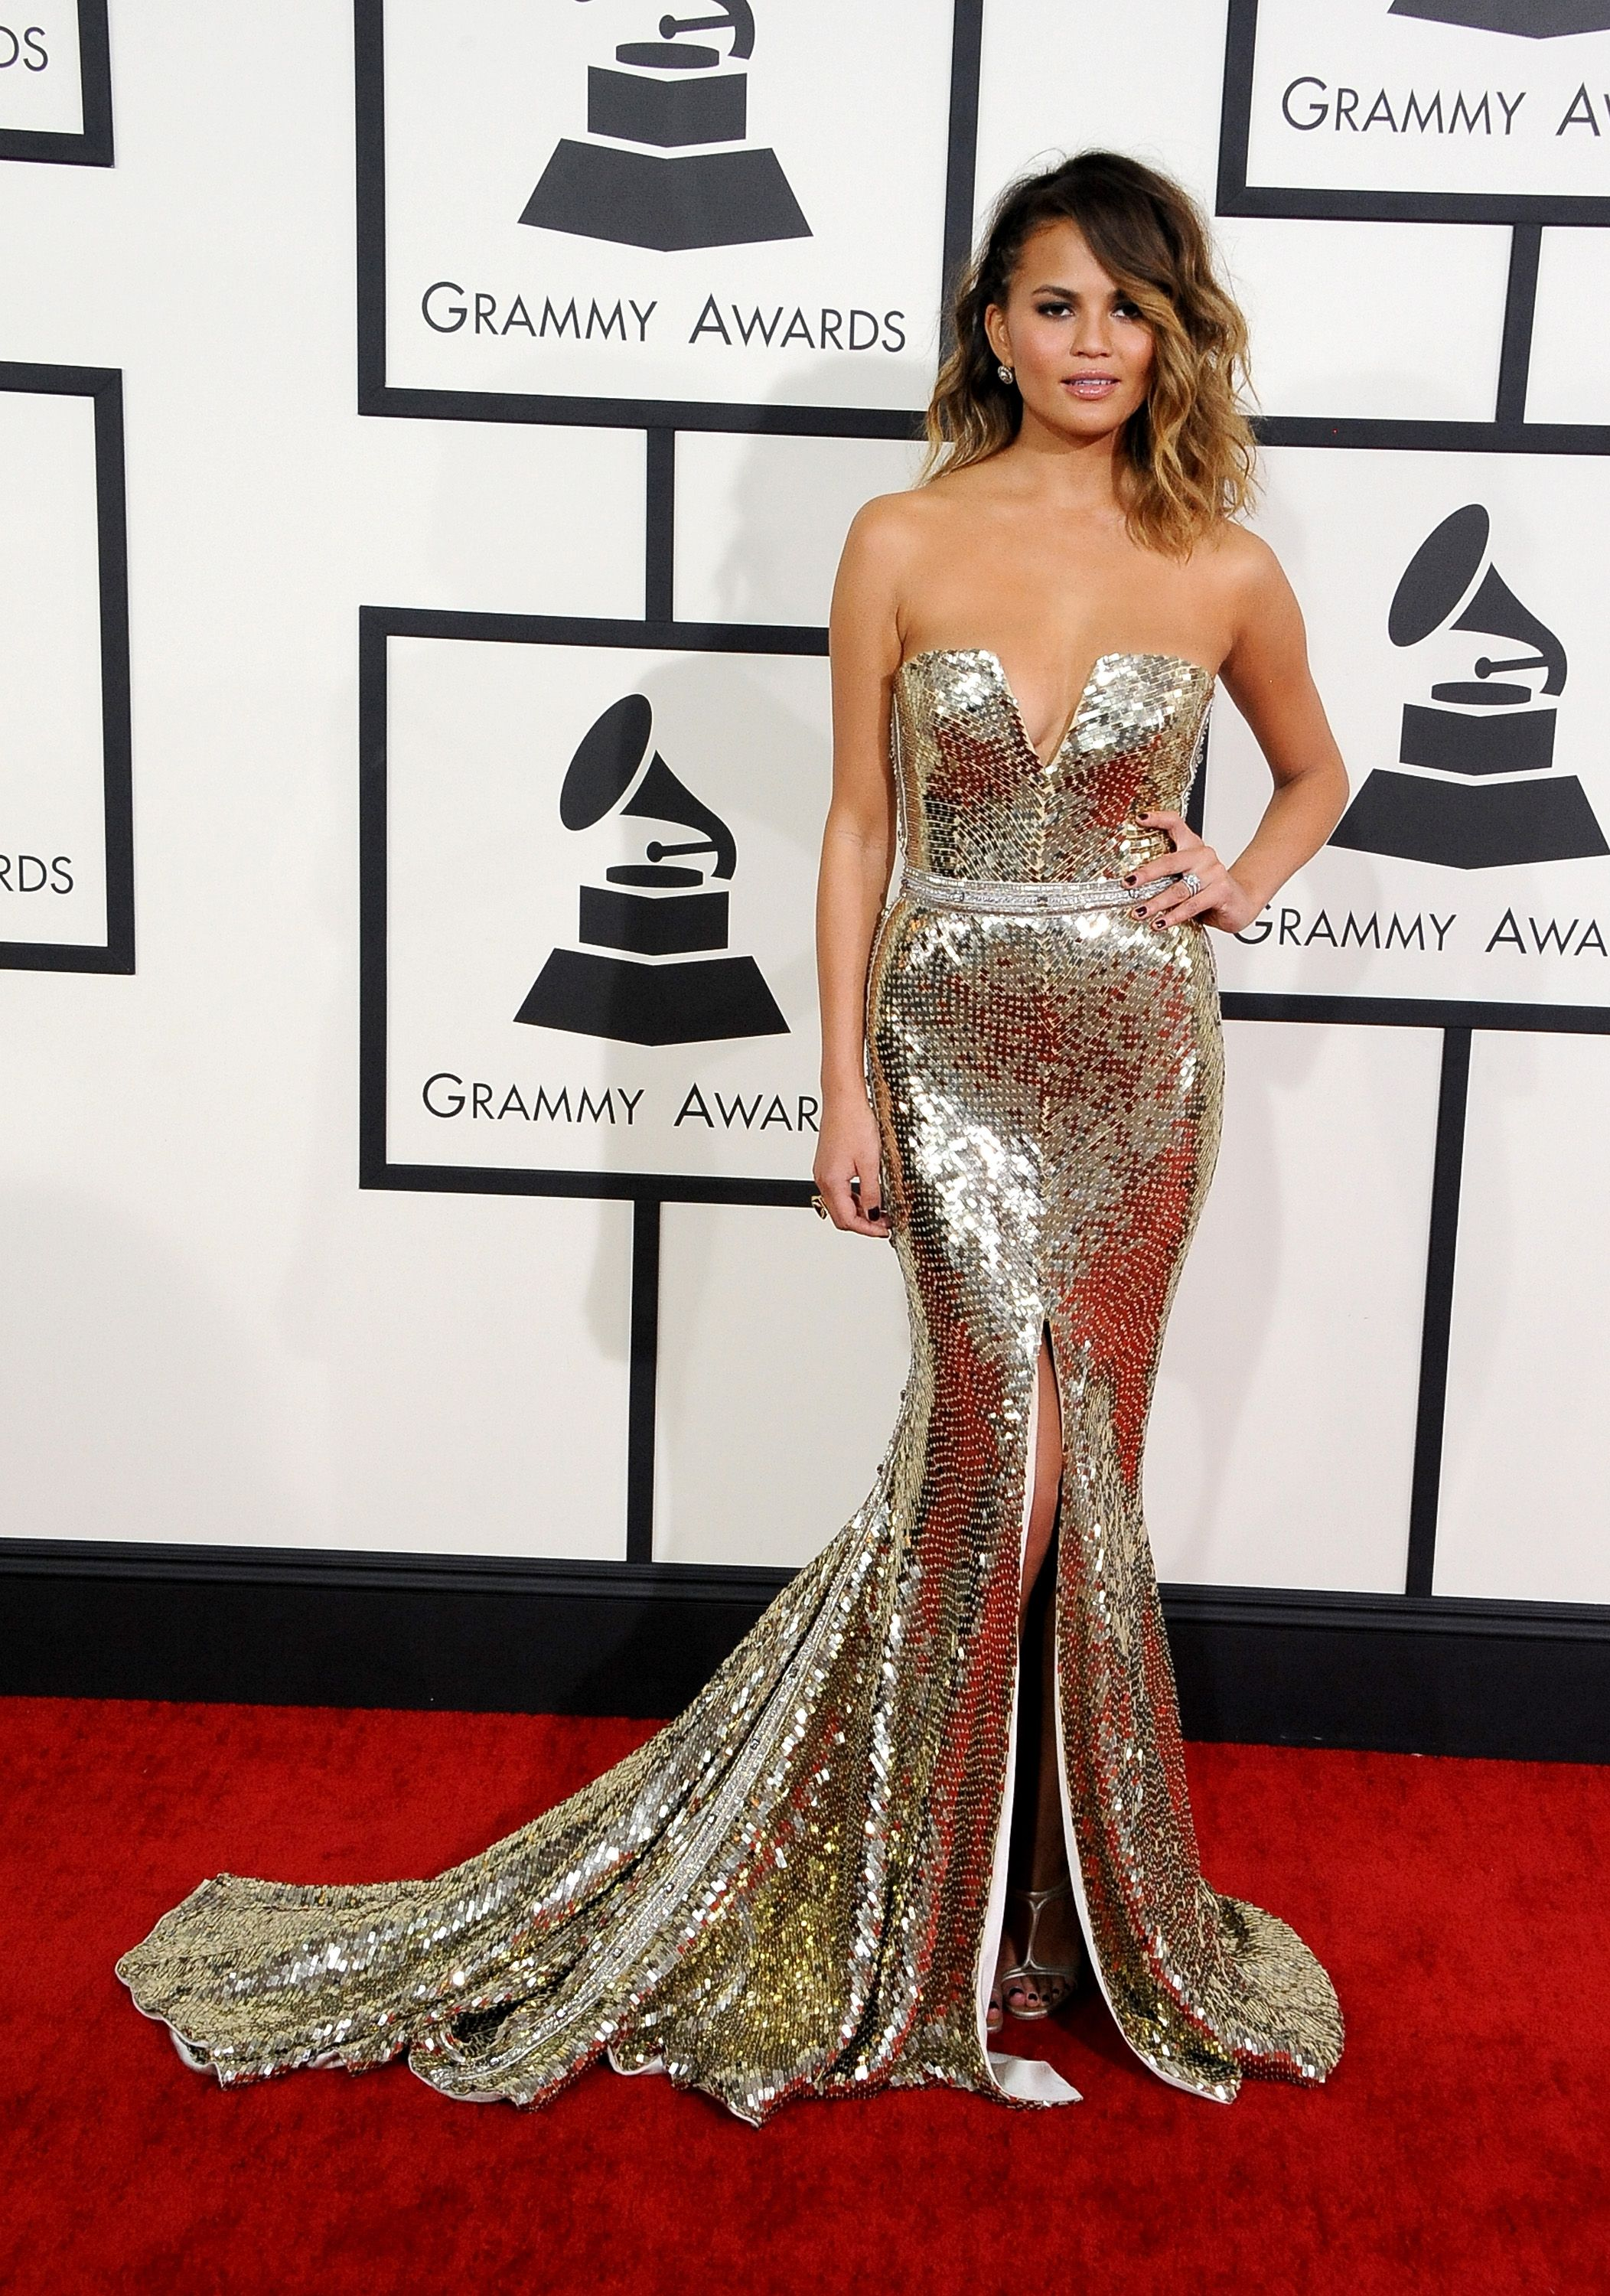 f231330d7f7841 Wearing a Johanna Johnson gown at the Grammy Awards. - ELLE.com